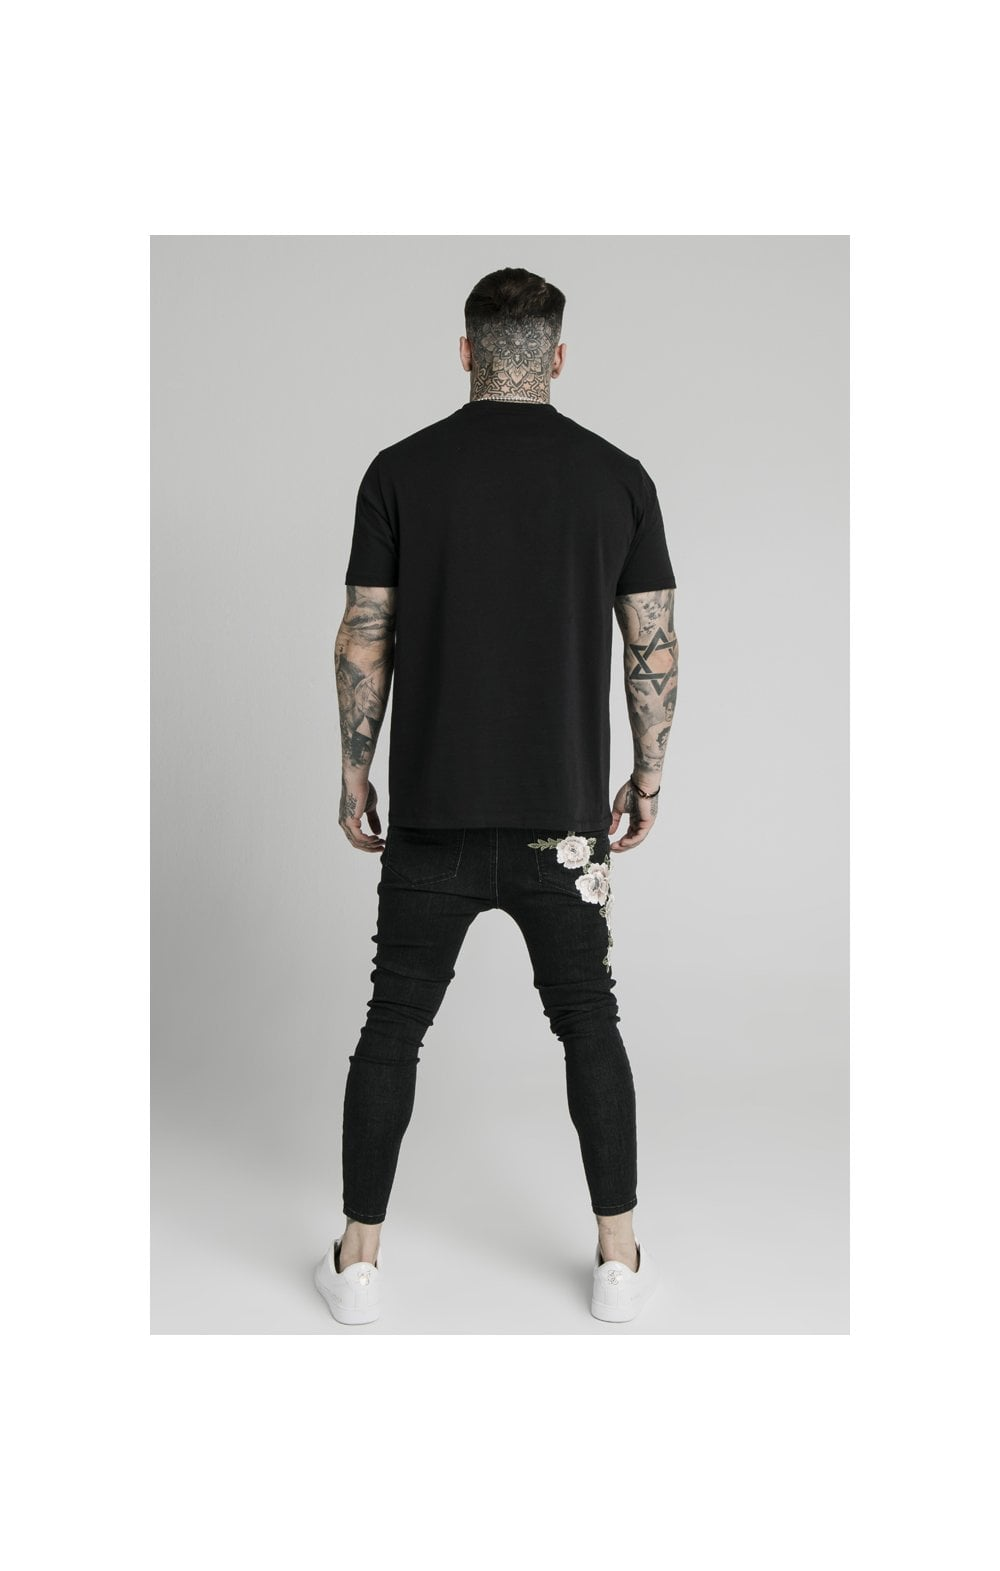 SikSilk Drop Crotch Pleated Appliqu Denims - Black (4)